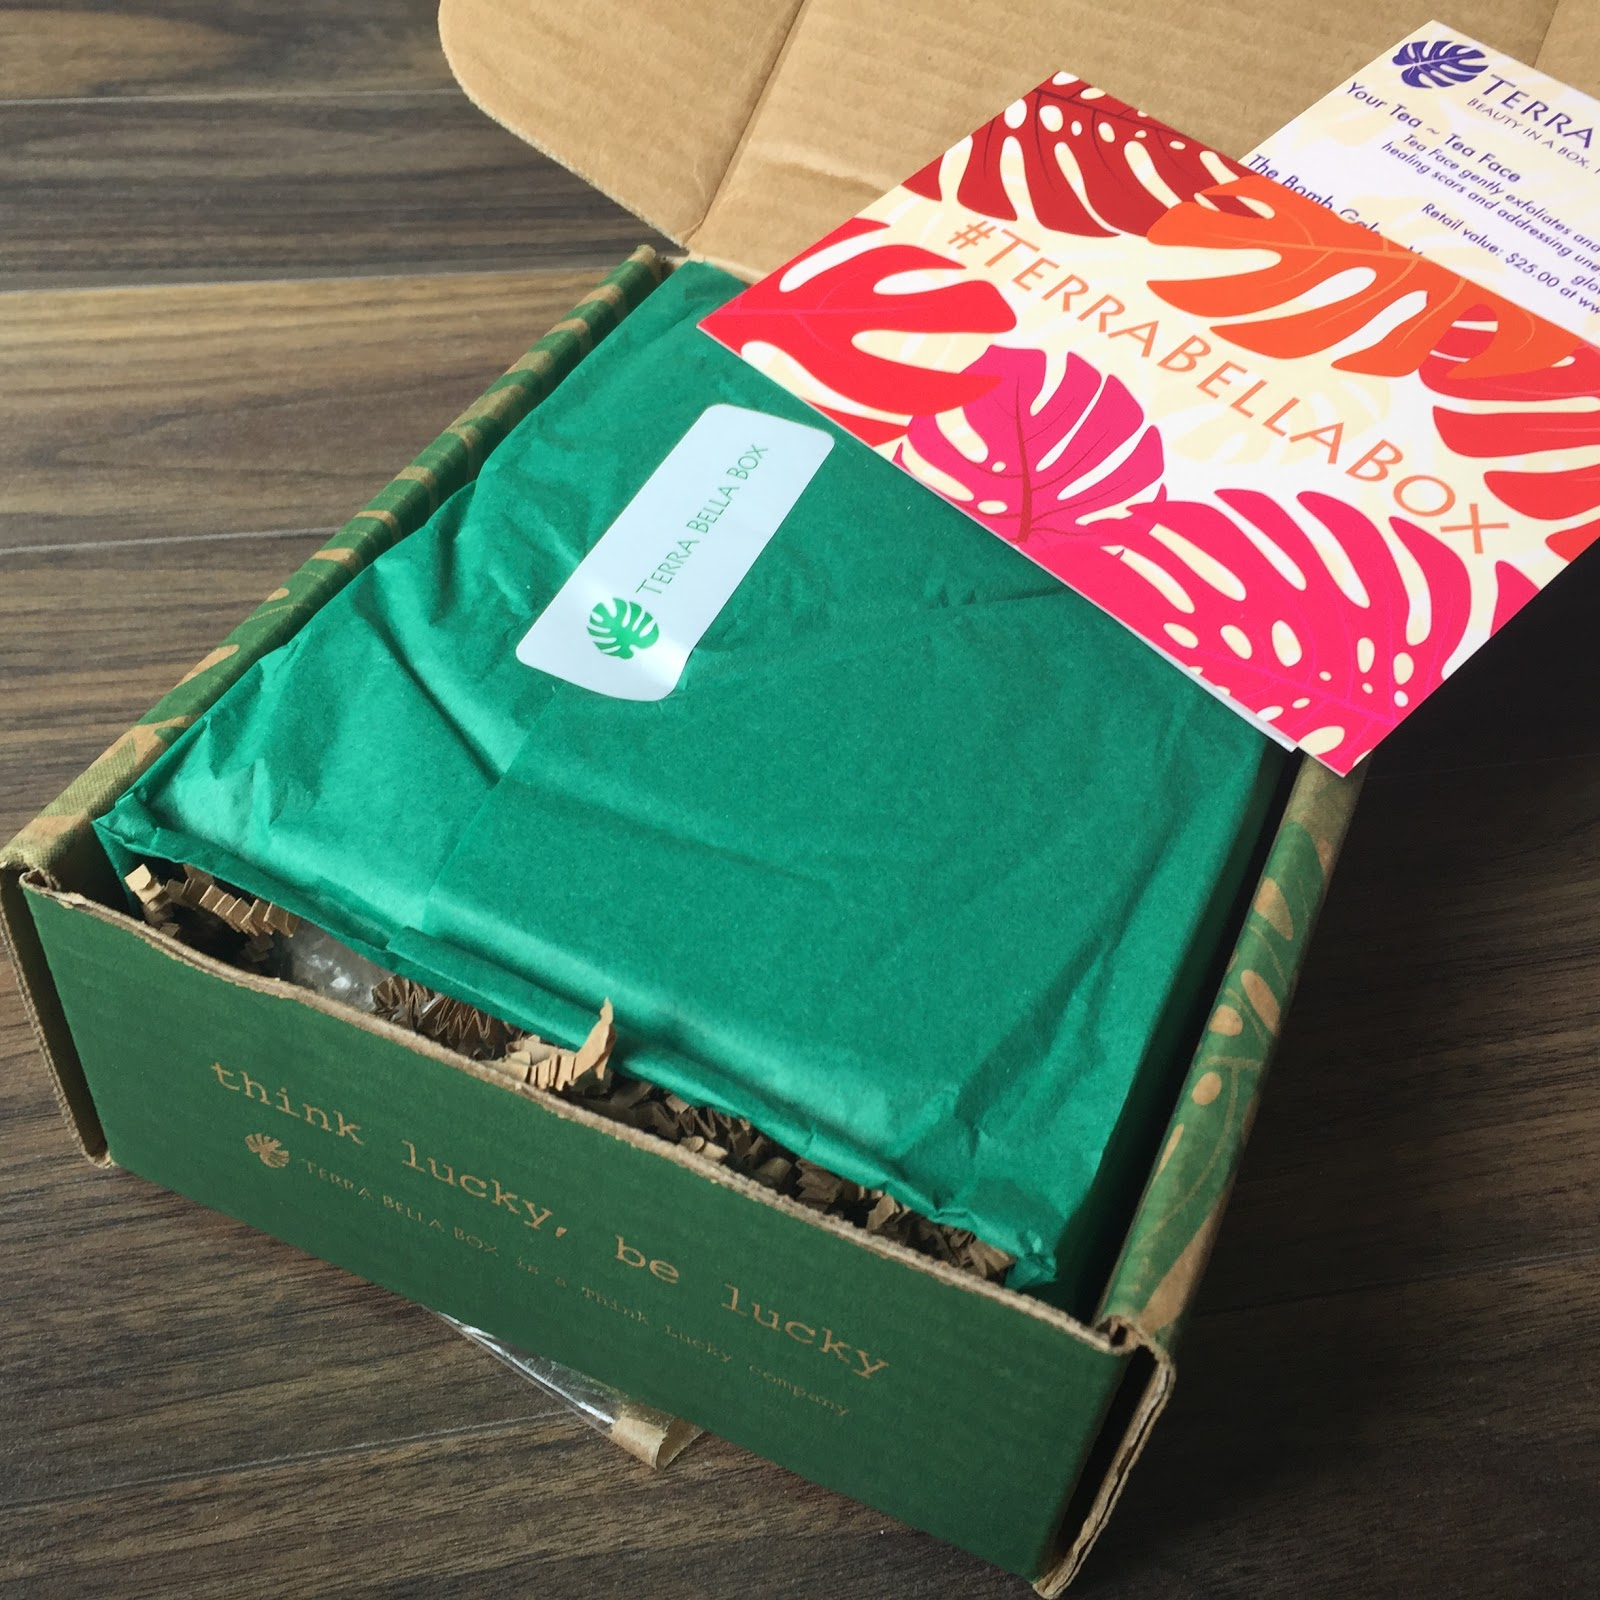 Terra Bella Box Review - August 2017 - Eco-Beauty